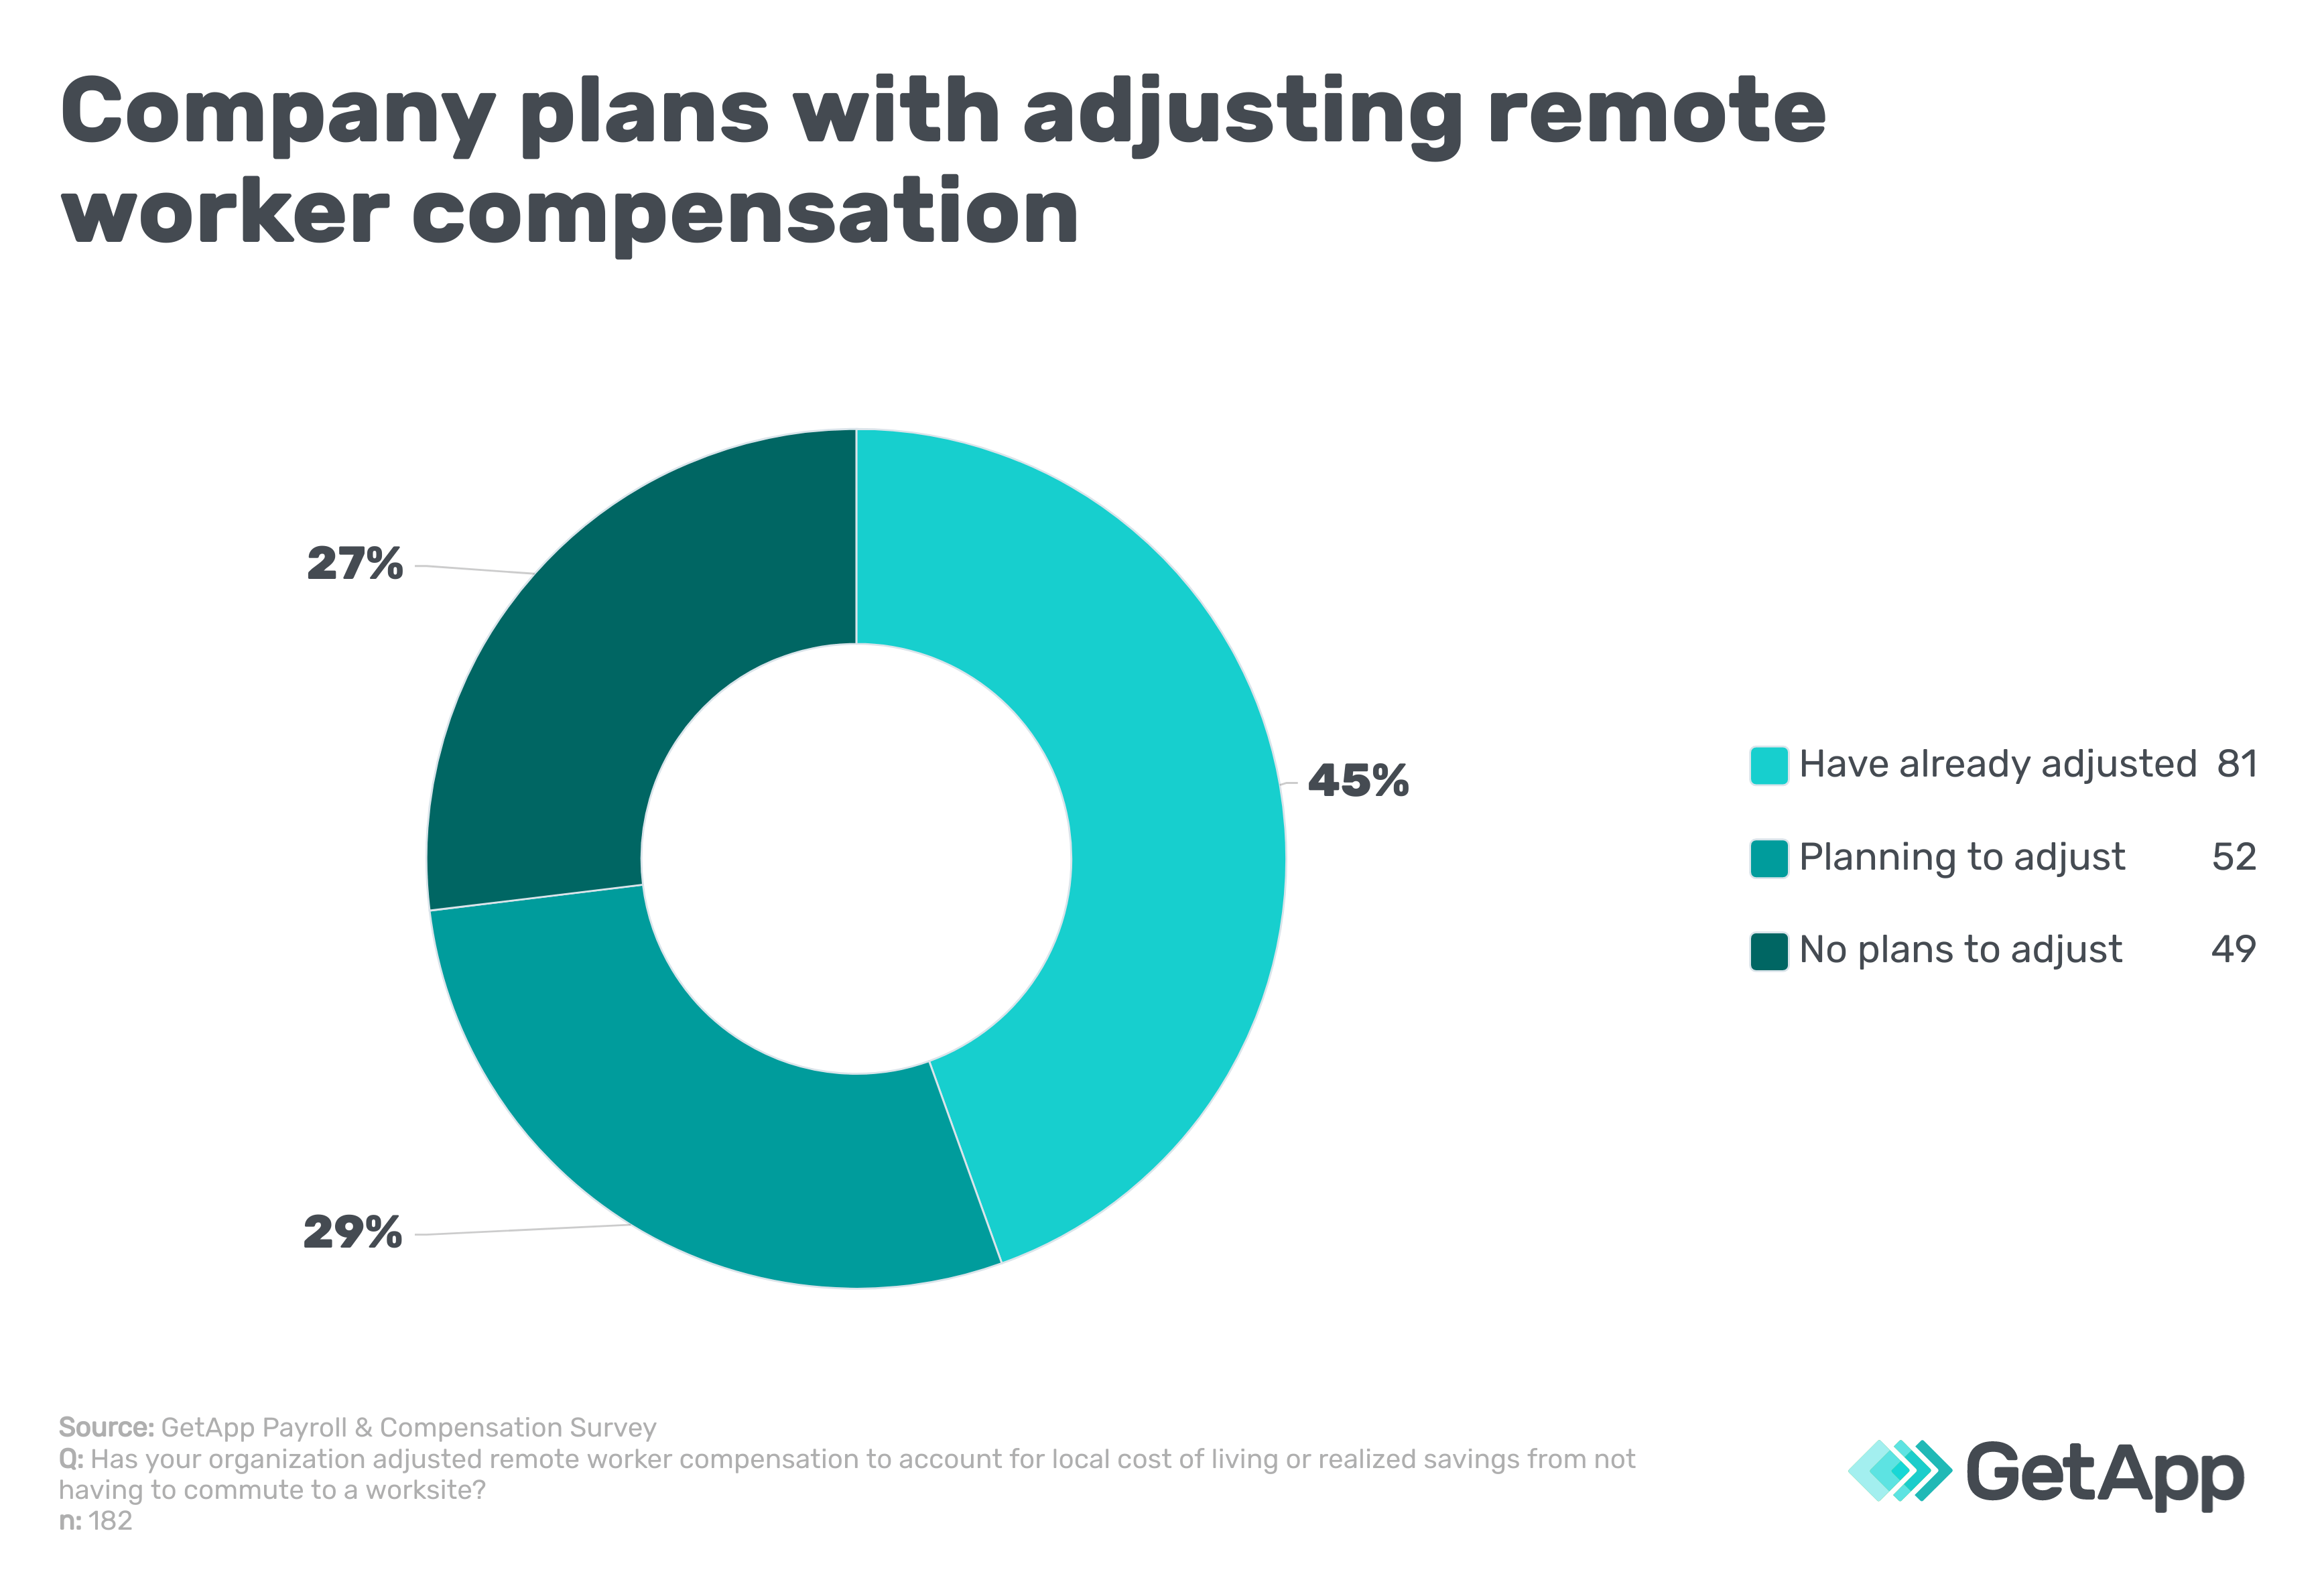 Company plans with adjusting remote worker compensation